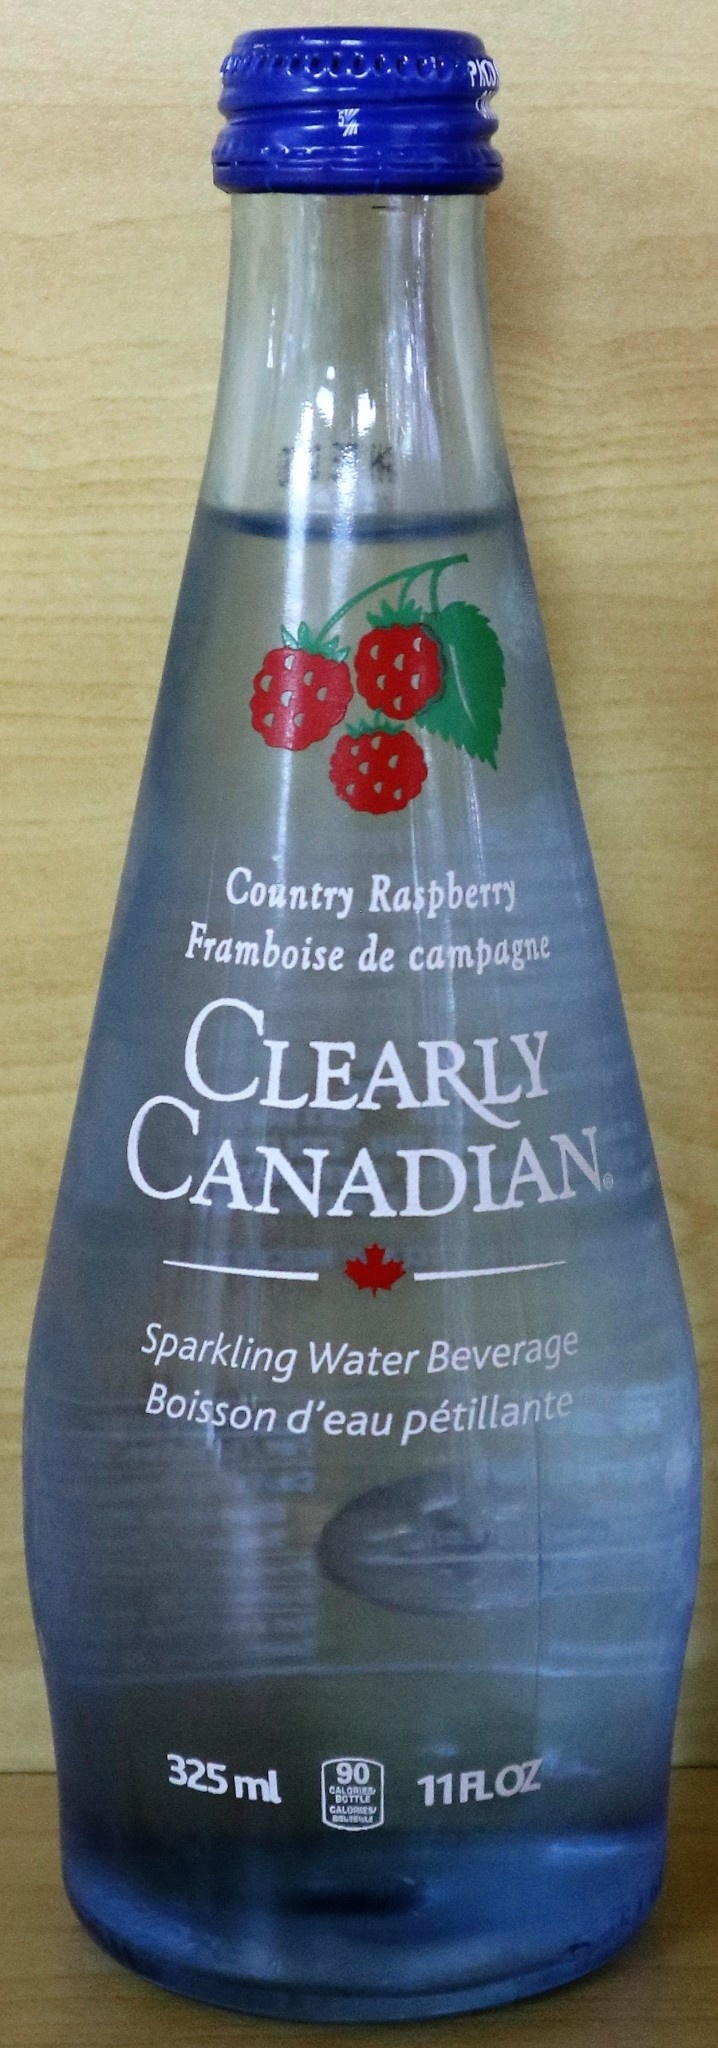 Clearly Food & Beverage Clearly Canadian - Country Raspberry - 325mL bottle